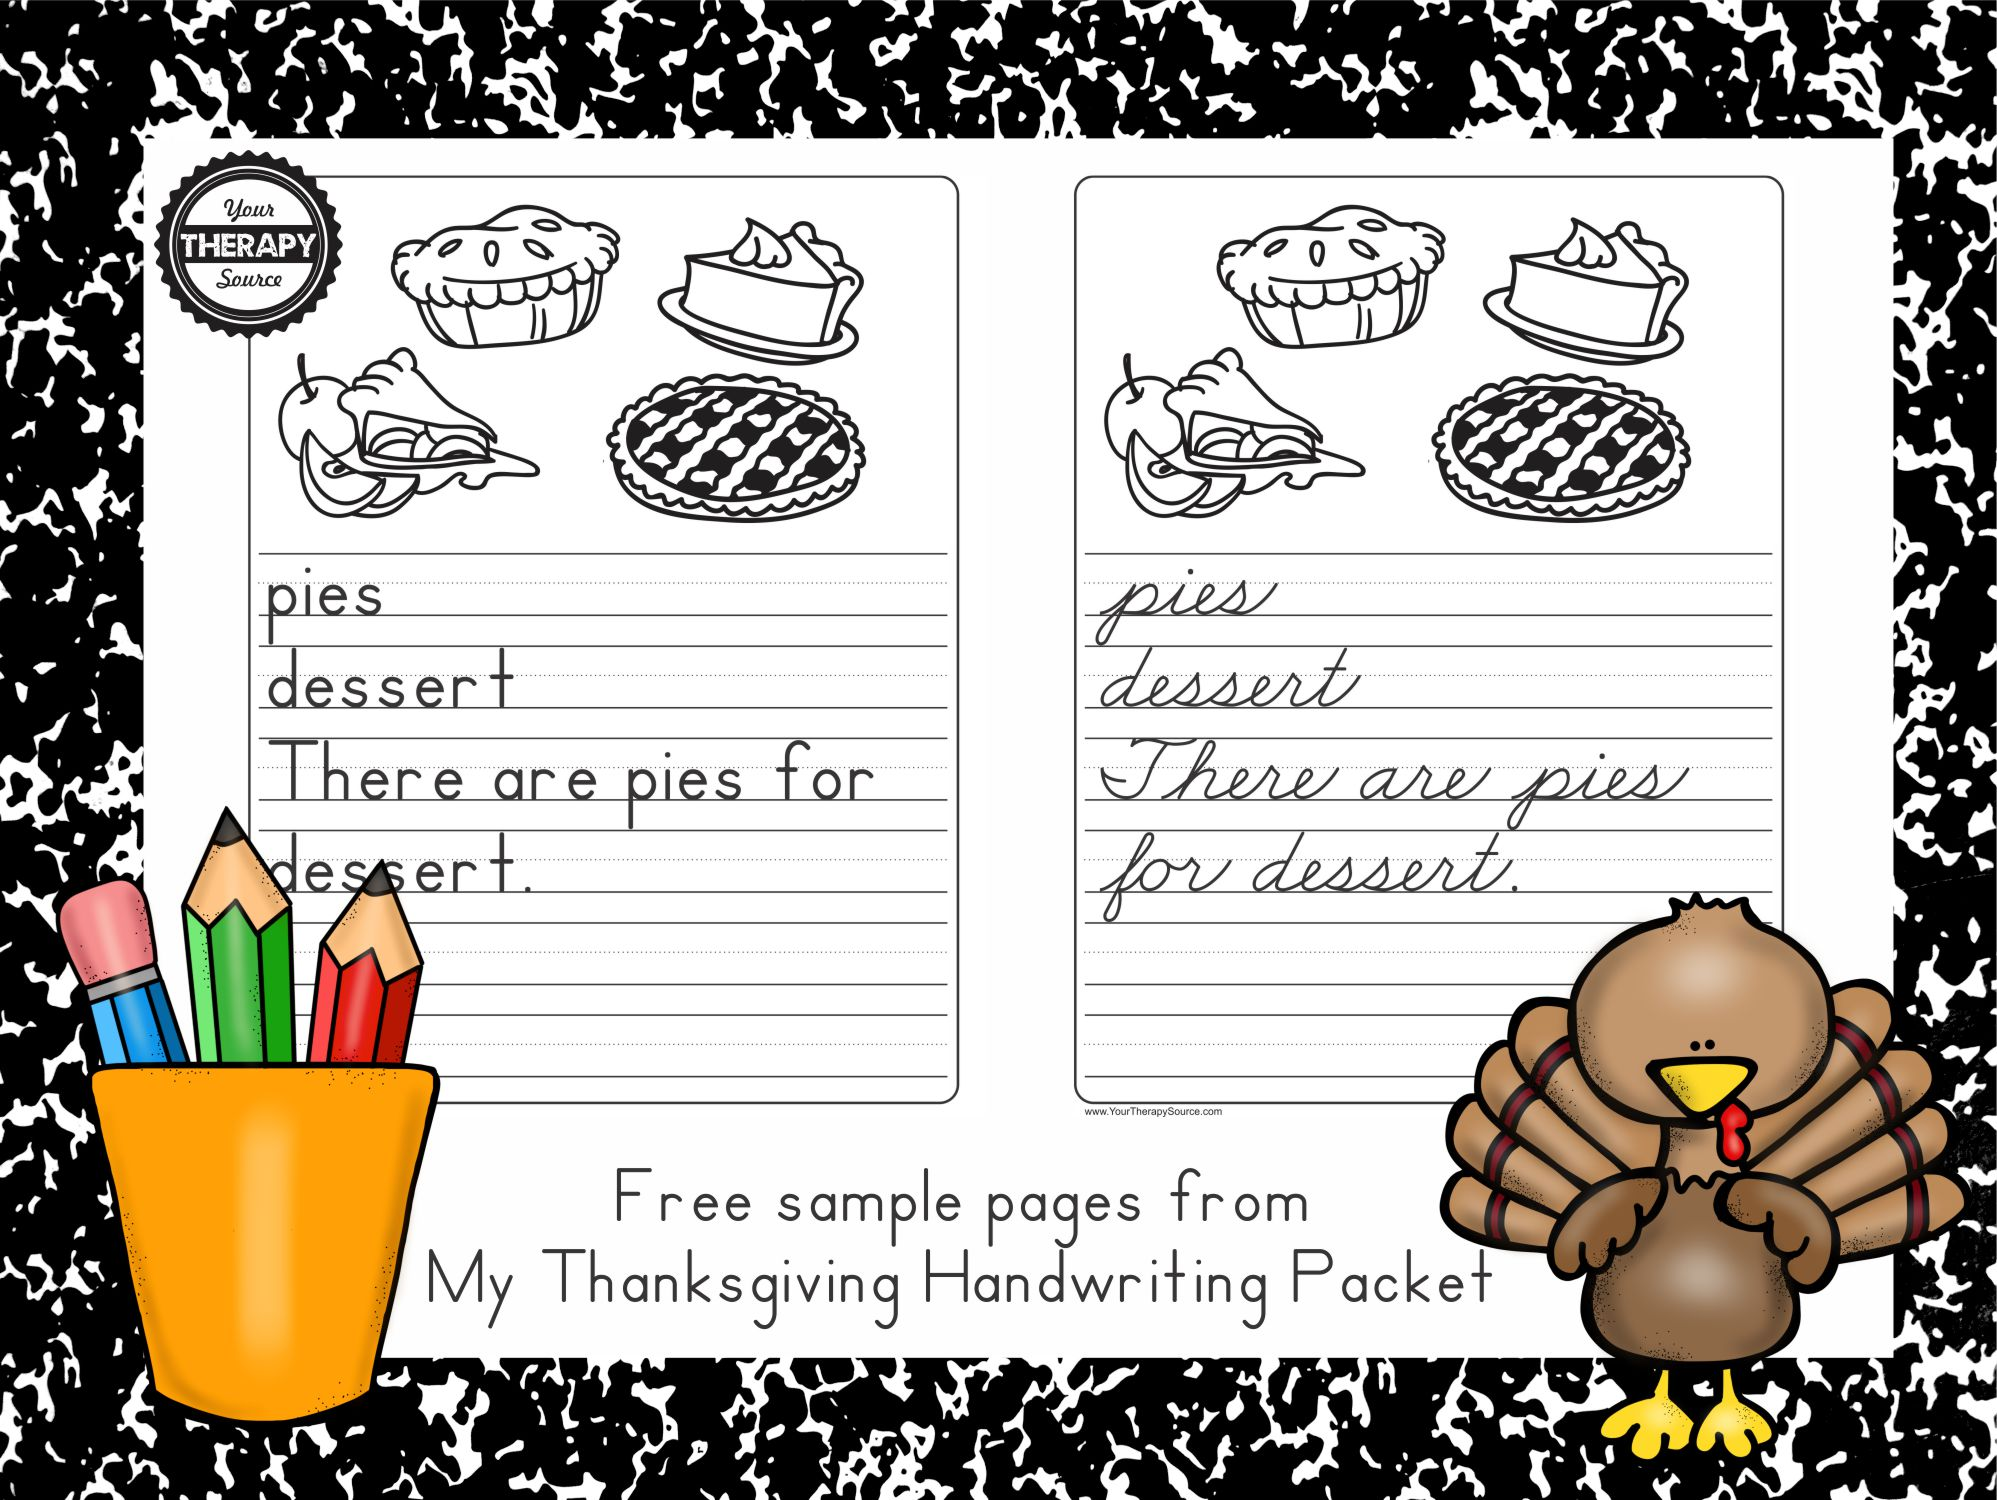 My Thanksgiving Handwriting Packet Freebie Pages